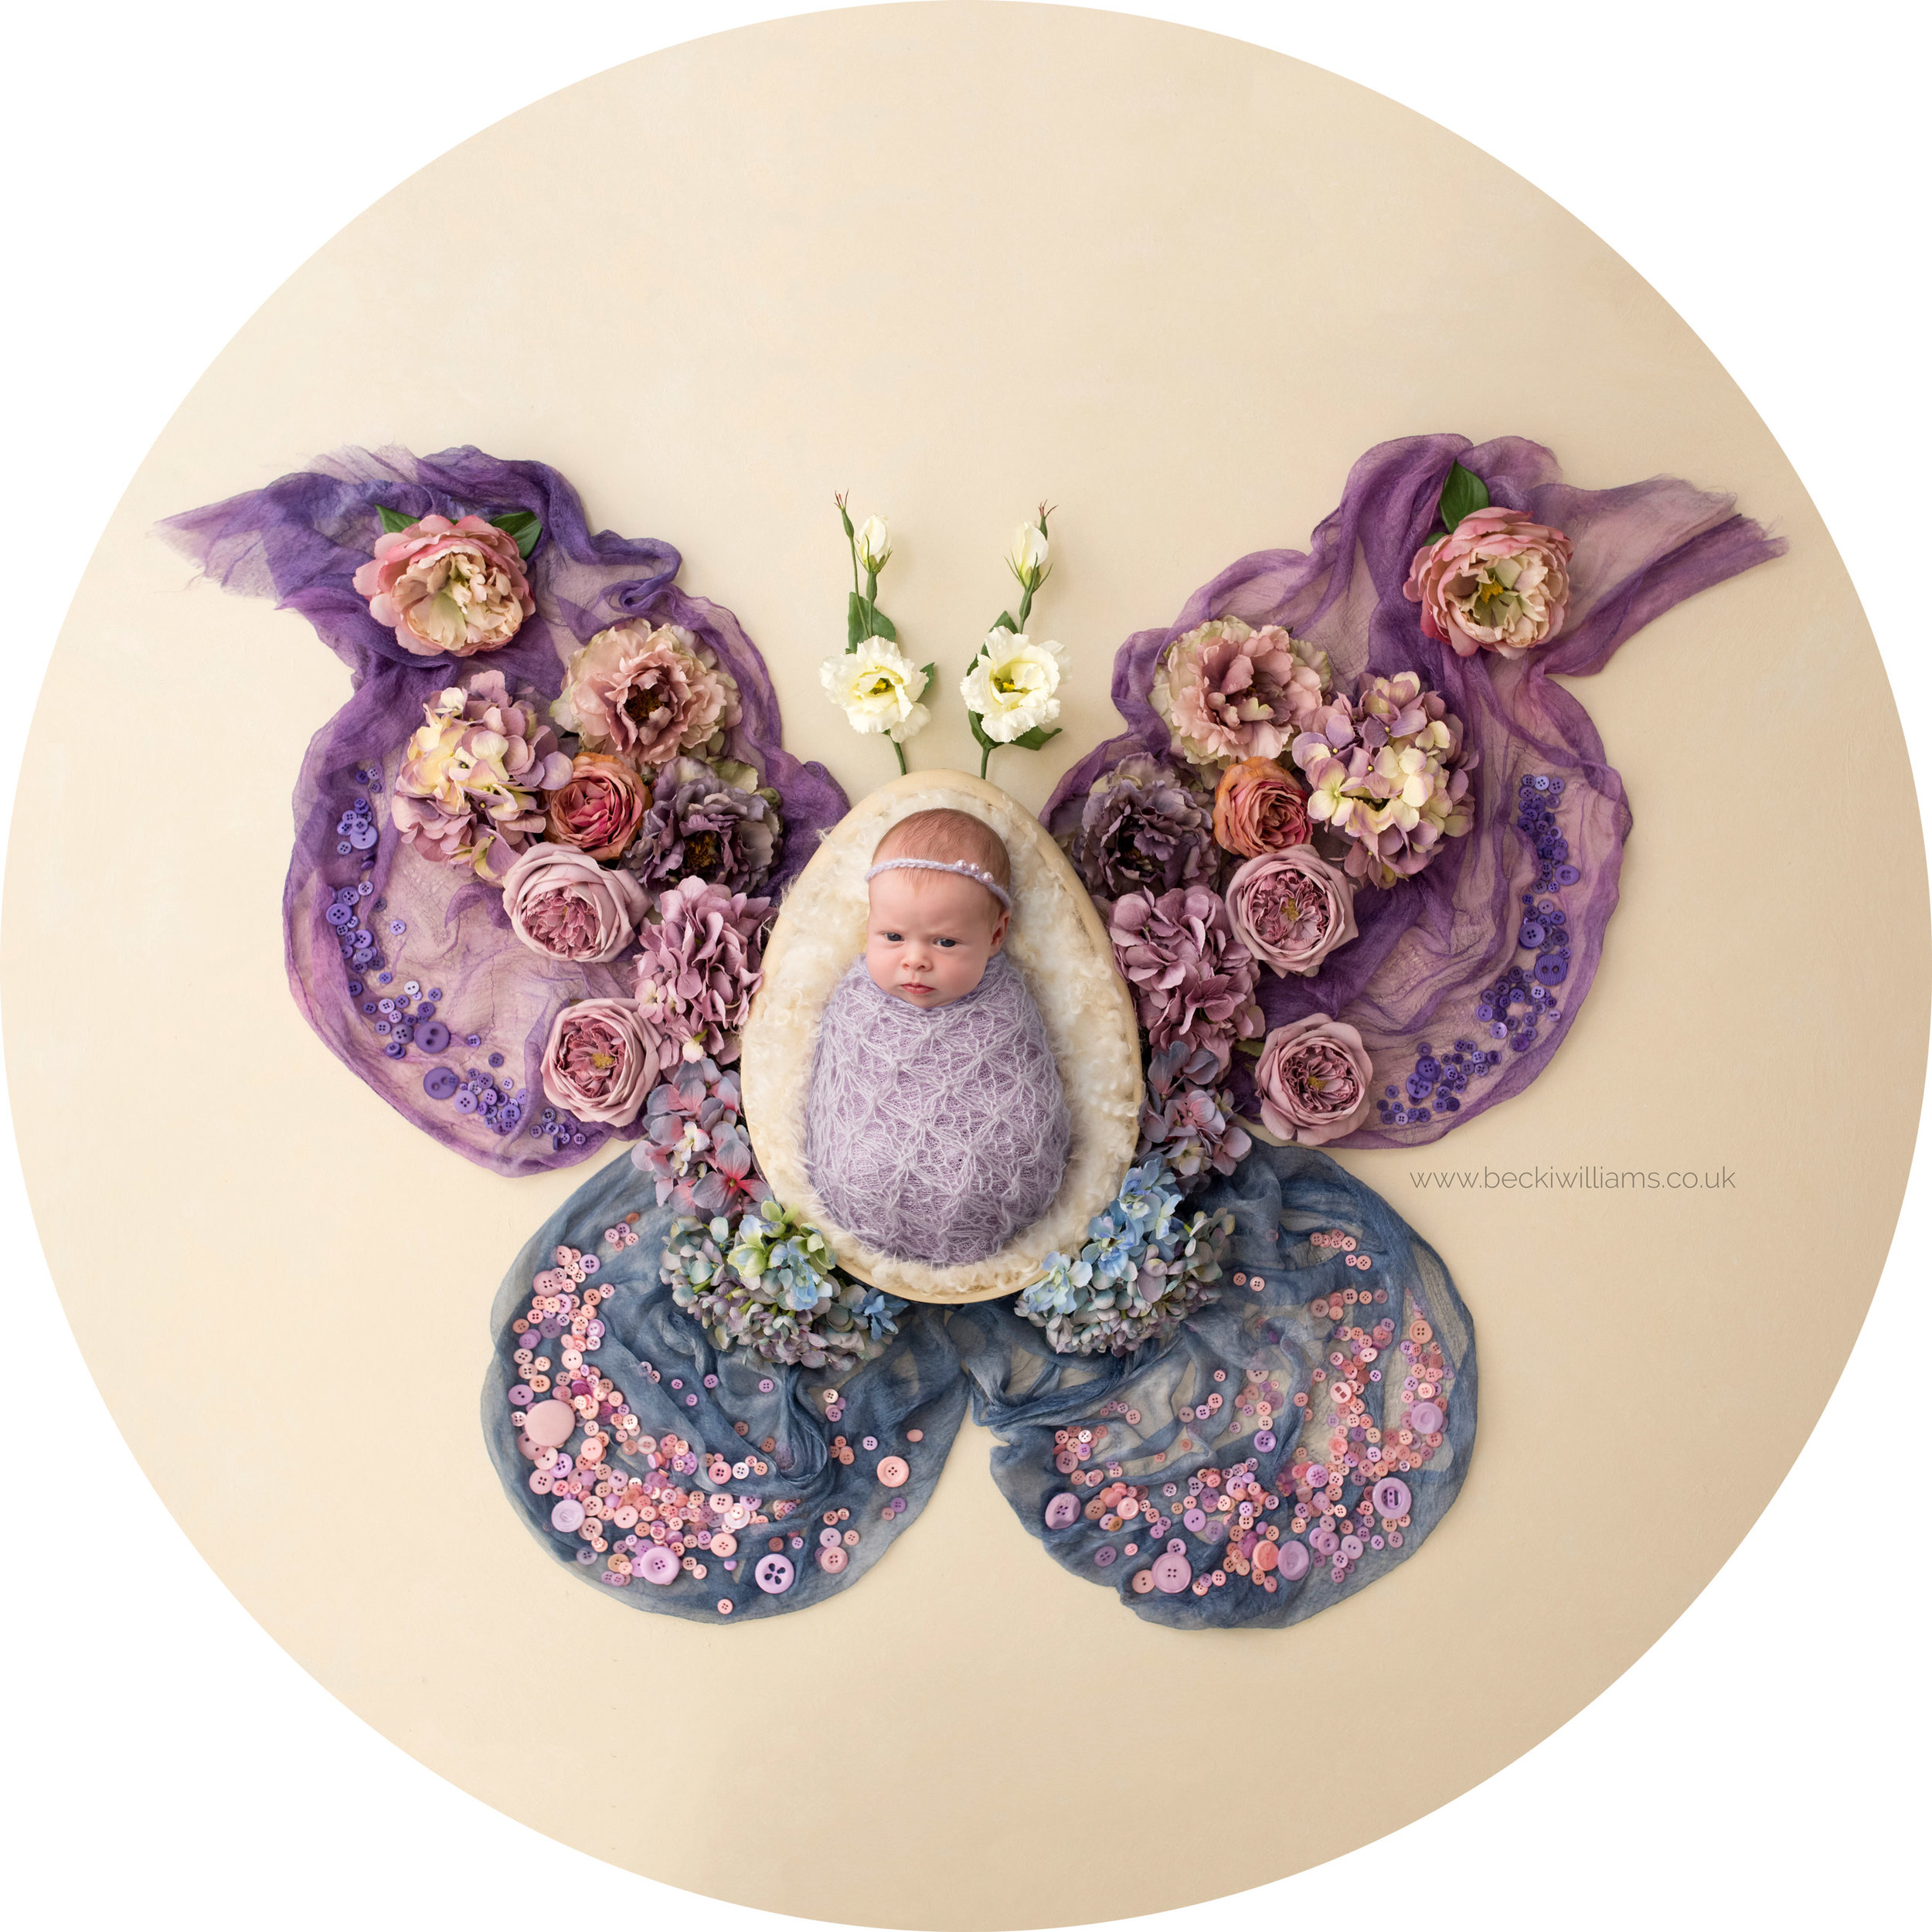 wrapped newborn girl laying on a butterfly shape made of flowers and blankets